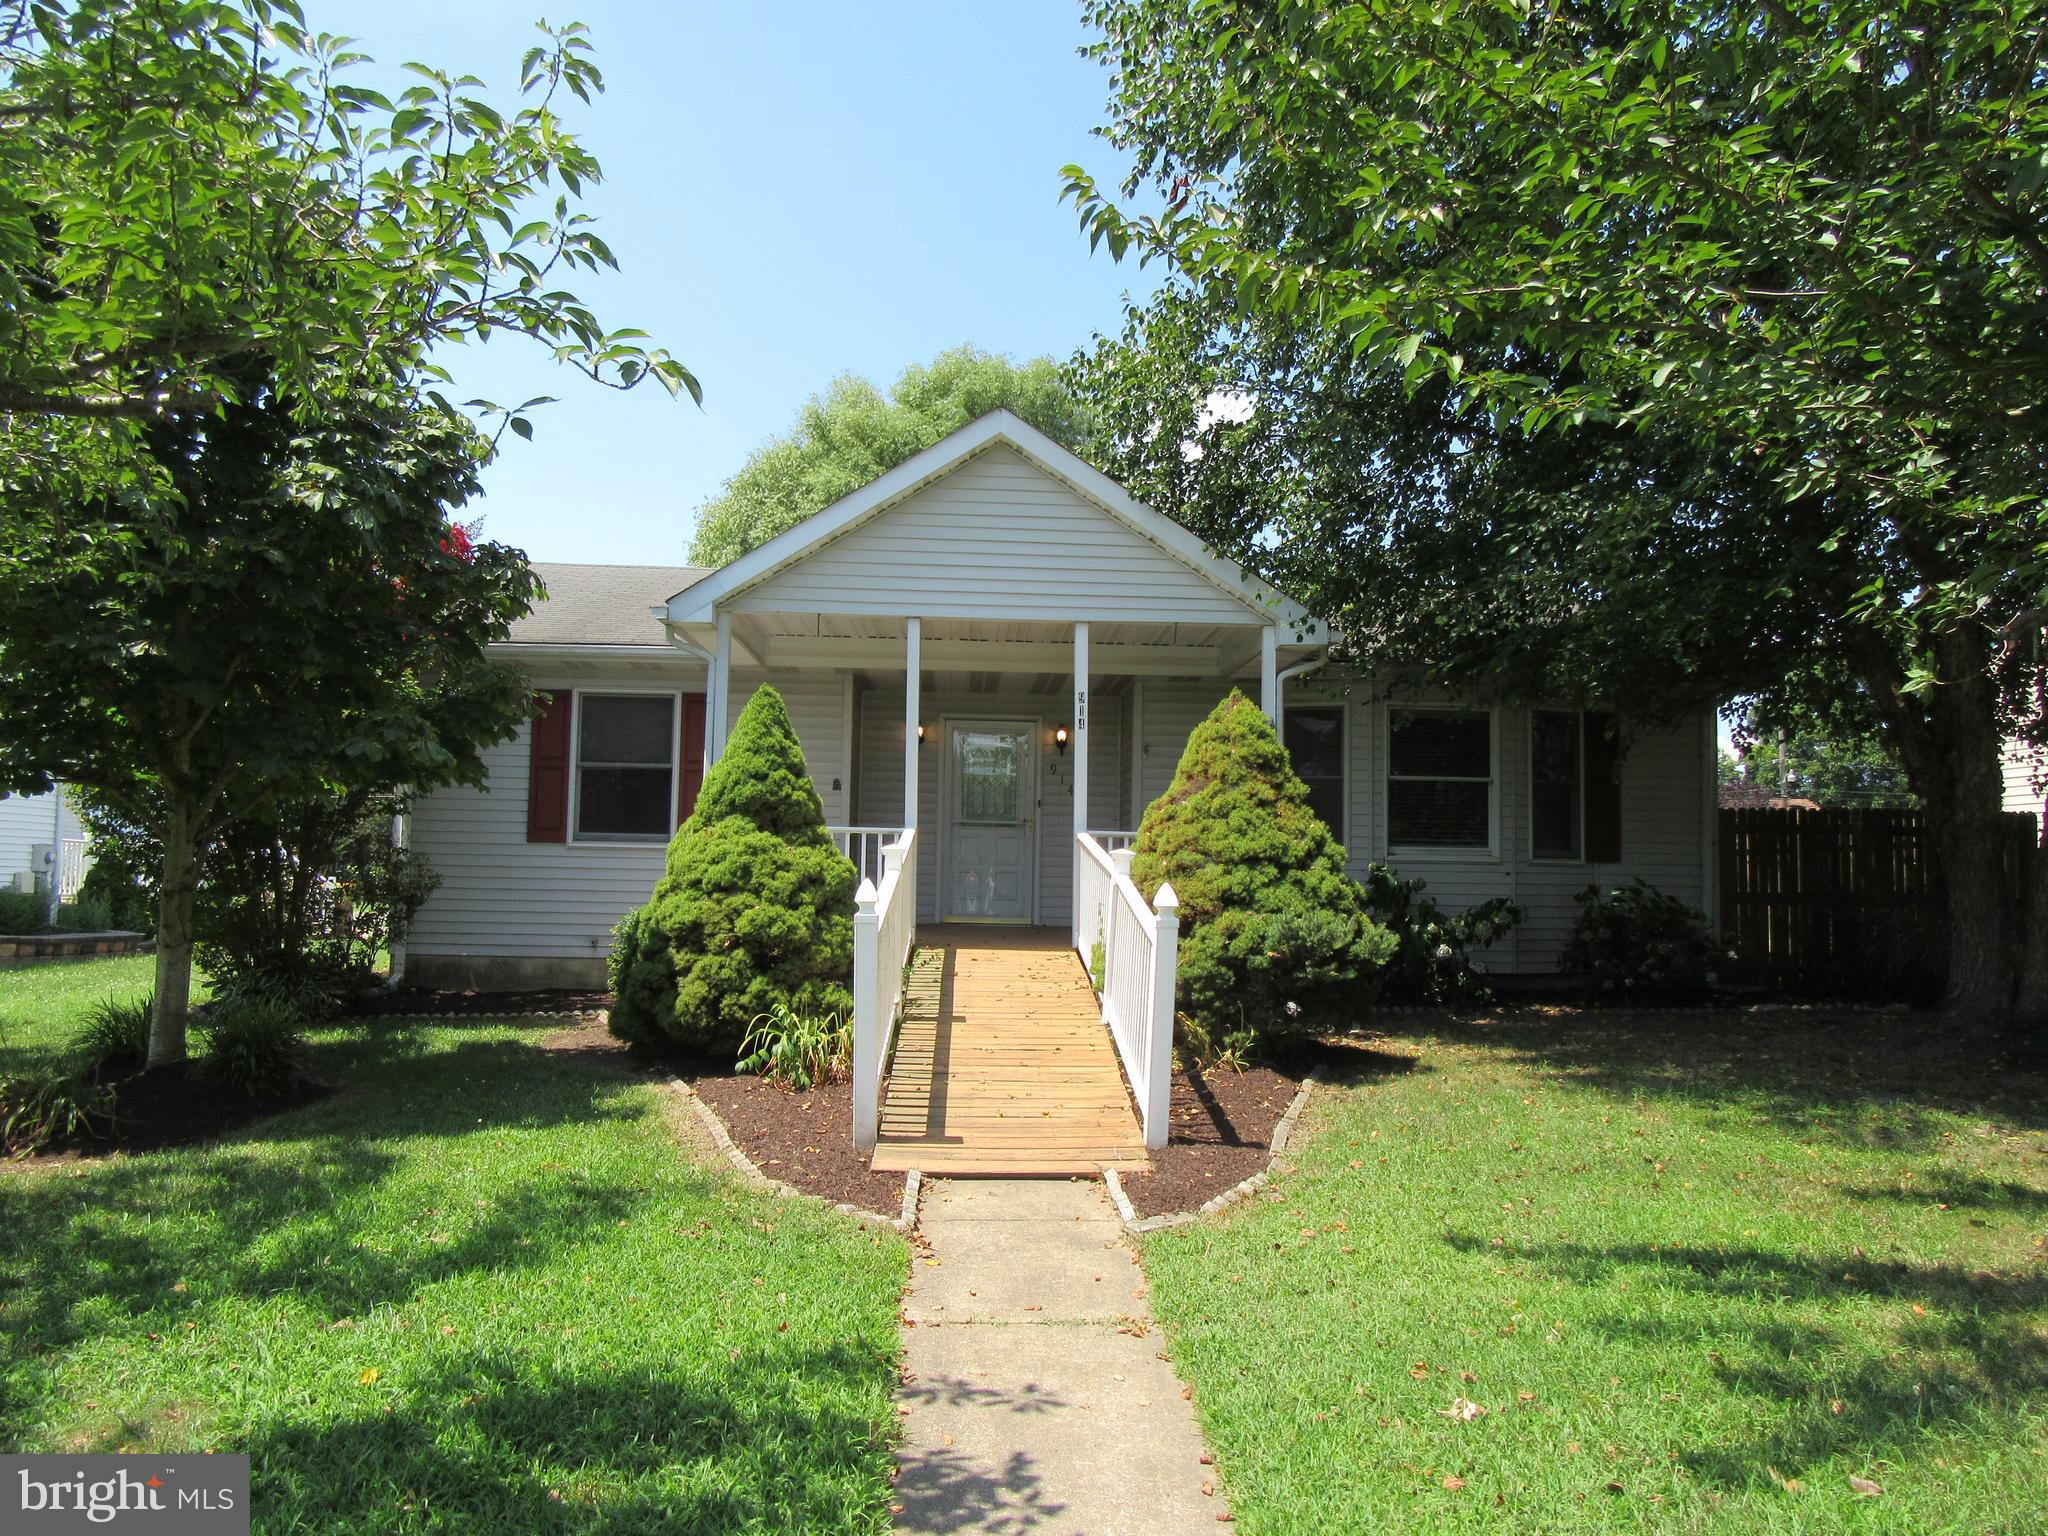 Come see this solid rancher in the heart of Middletown!Full eat in kitchen with 2 pantries, granite counters and all appliances included. Main floor laundry. The master bedroom features a full bath , new carpet and walk in closet . 2 other bedrooms are a good size with new carpet. The living room is bright and cheery, fresh paint, ceiling fan and laminate flooring. But wait! The full finished basement is HUGE with tons of storage, recessed lighting and pellet stove- there is also a full bath here. The rear yard features privacy fencing, patio and working hut tub. OVERSIZED 2 car detached garage for all your toys!The front is nicely landscaped with flowering trees and shrubs in the spring. The large front porch is your front row seat for watching the many parades and fireworks! This is a solid home with a lot to offer. Walking distance to Meredith Middle School, shops and restaurants in the Appoquinimink school district. Schedule your showing today!